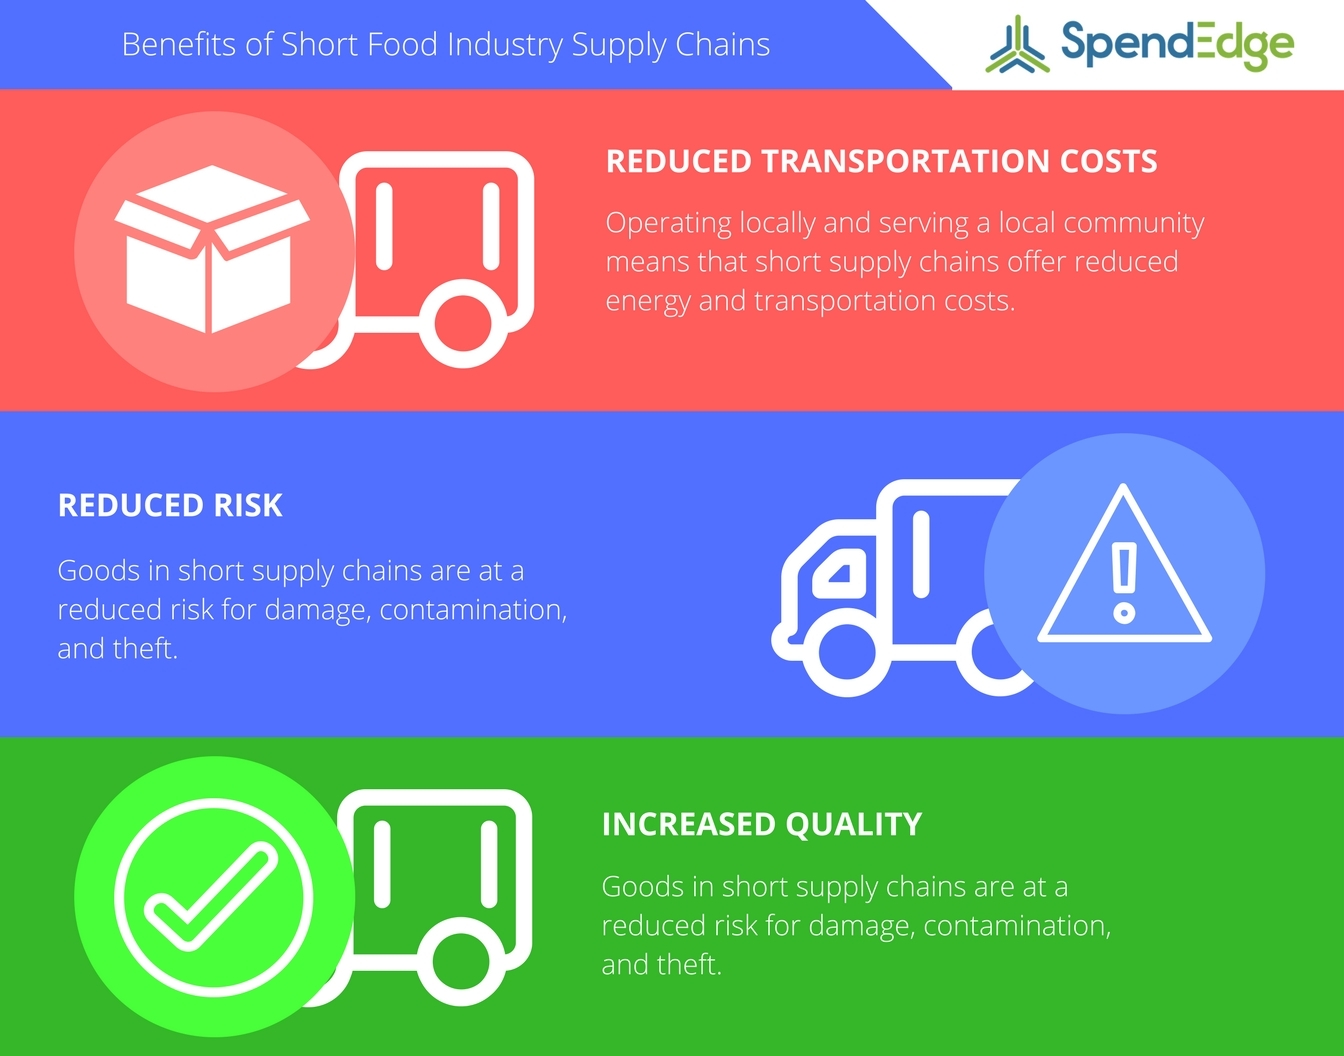 SpendEdge highlights the benefits of short supply chains. (Graphic: Business Wire)